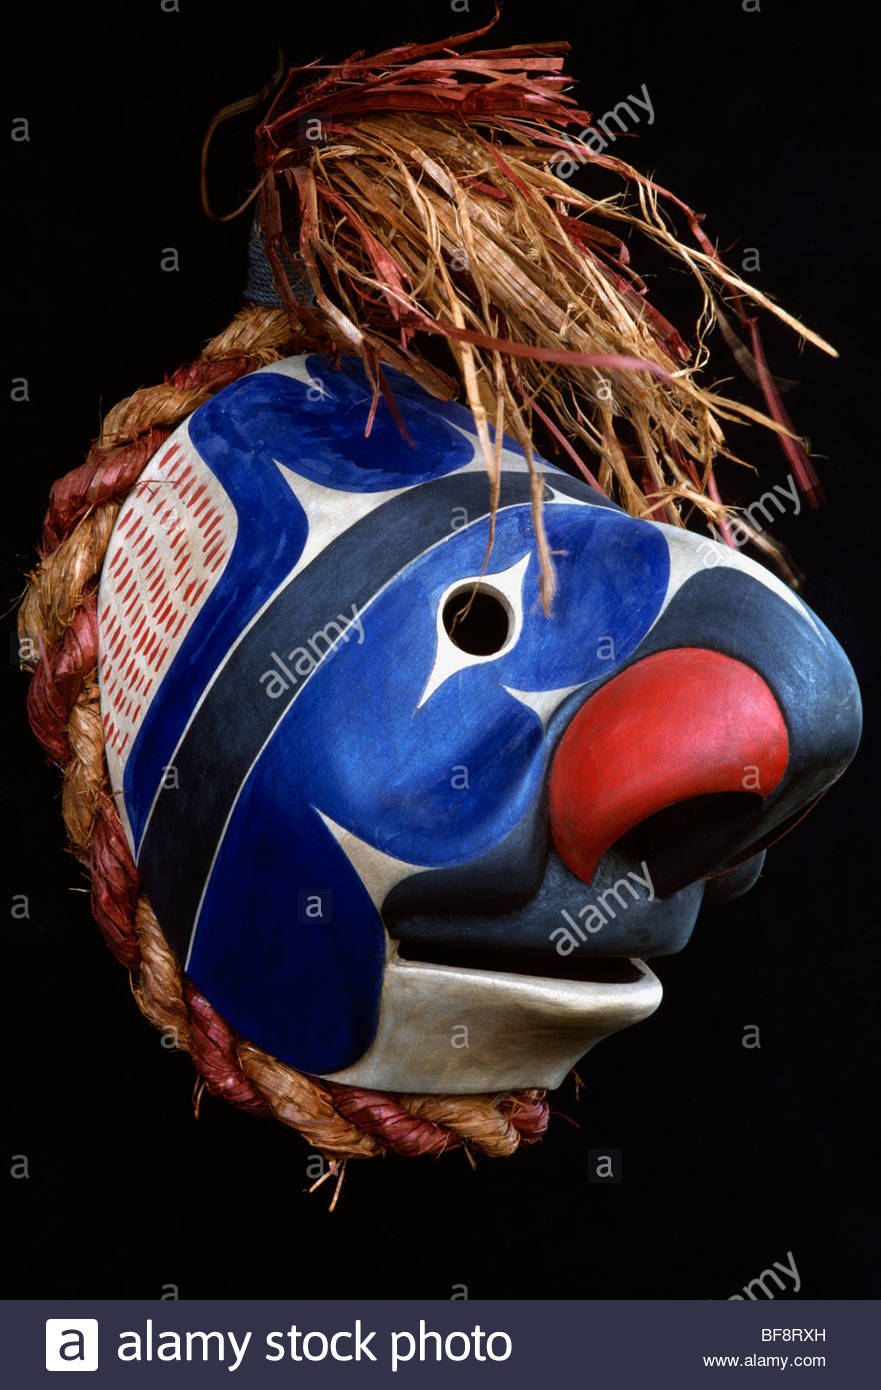 Noomutul or fool mask carved by Art Thompson, Nea Bay, British Columbia, Canada - Stock Image